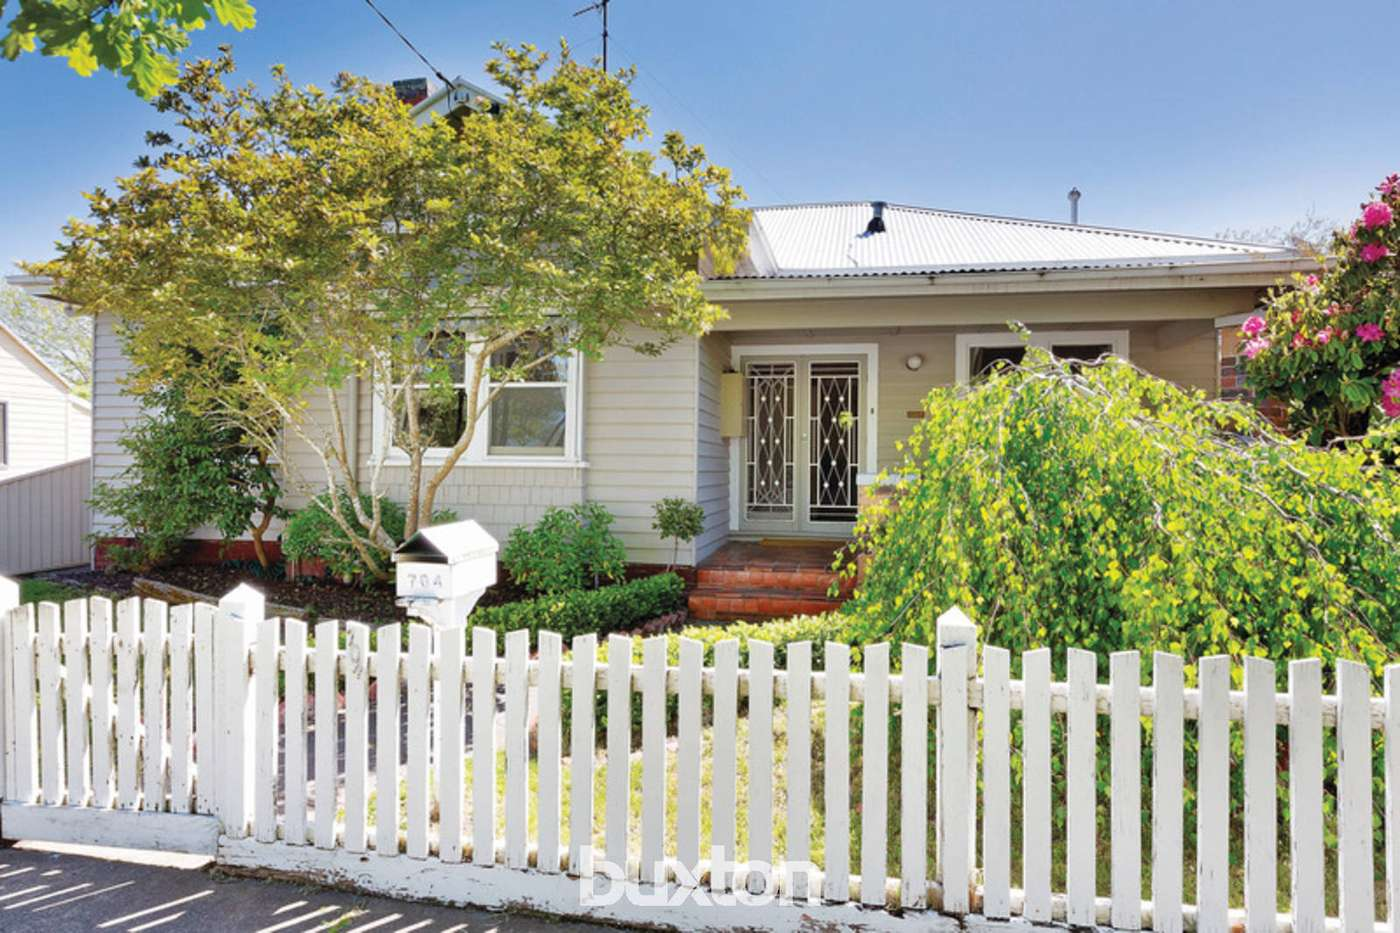 Main view of Homely house listing, 704 South Street, Ballarat Central, VIC 3350